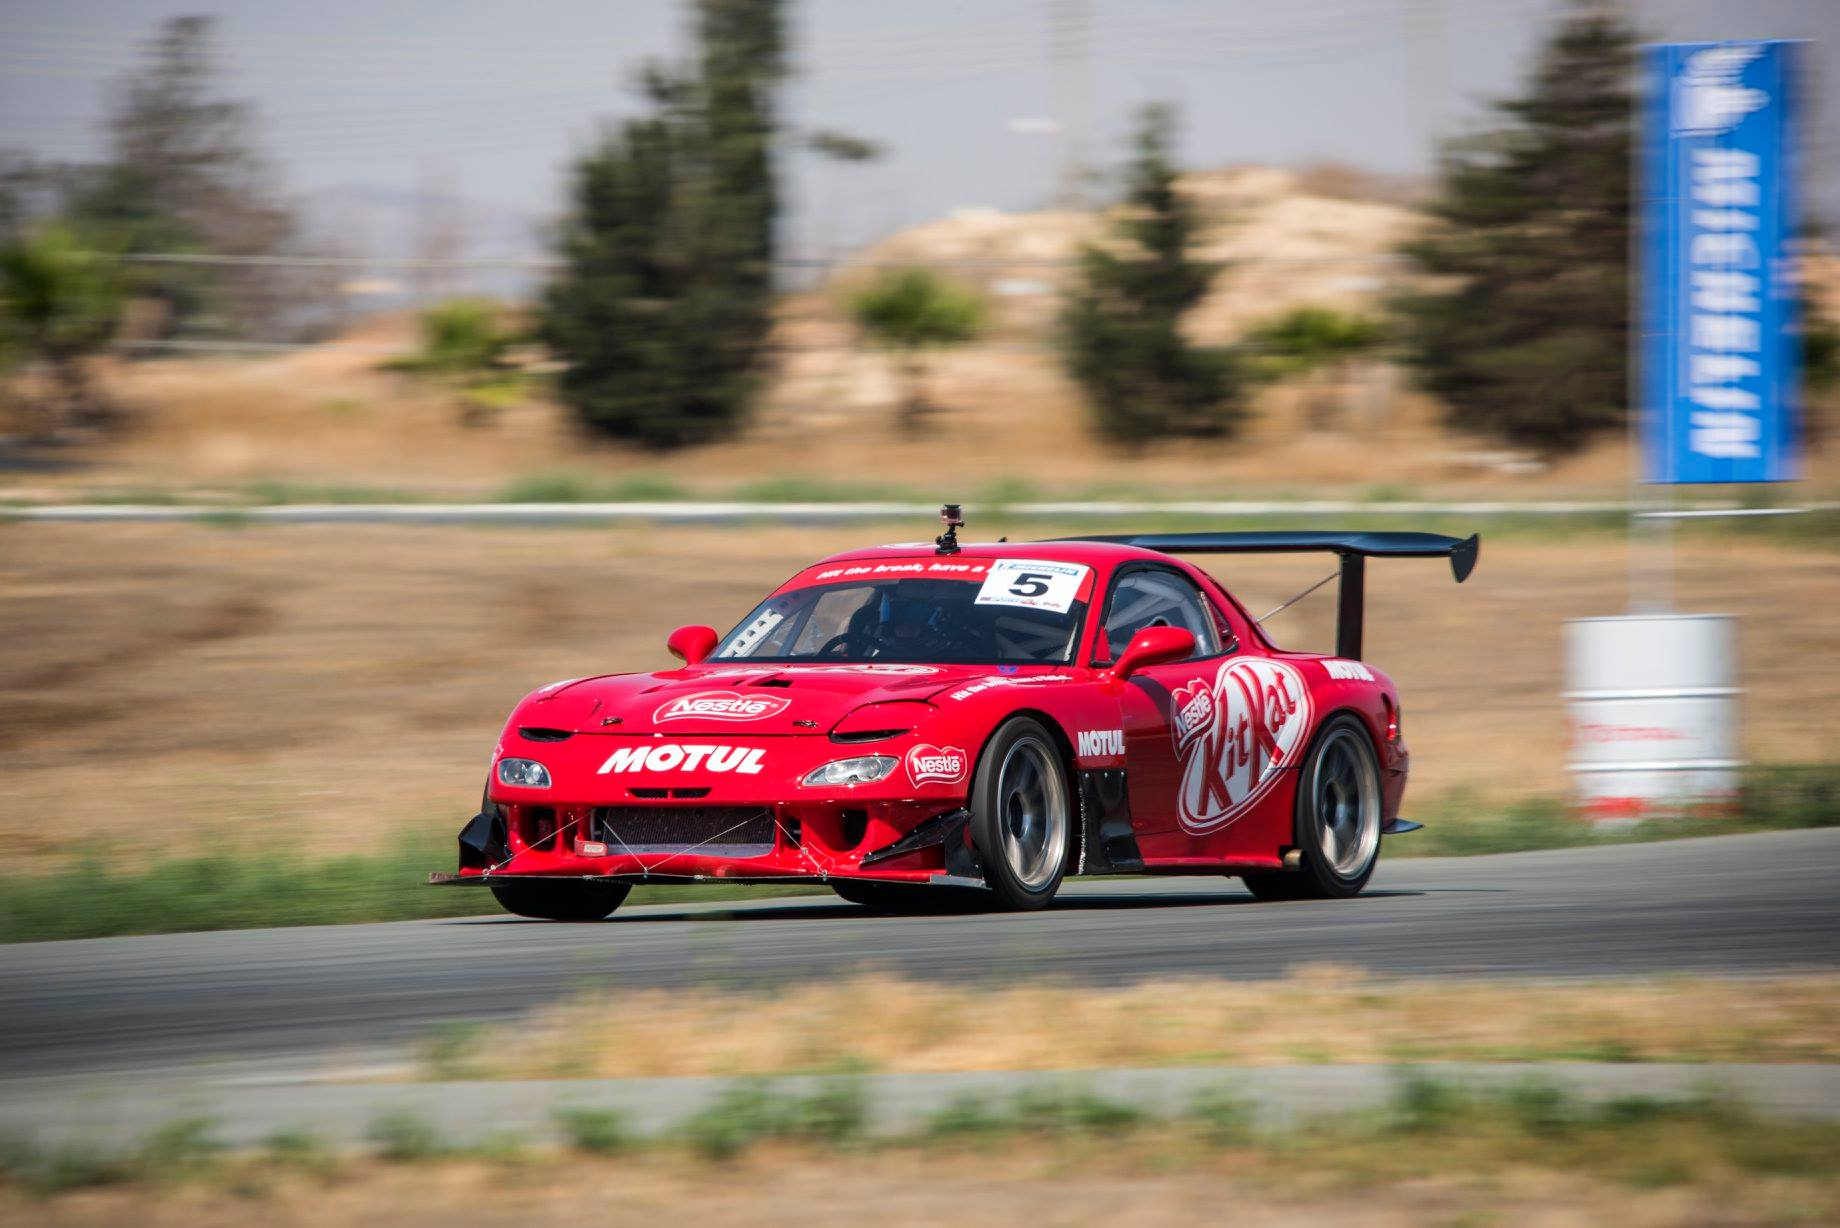 The RX7 looks like the perfect drift car, is that something you would consider pursuing?